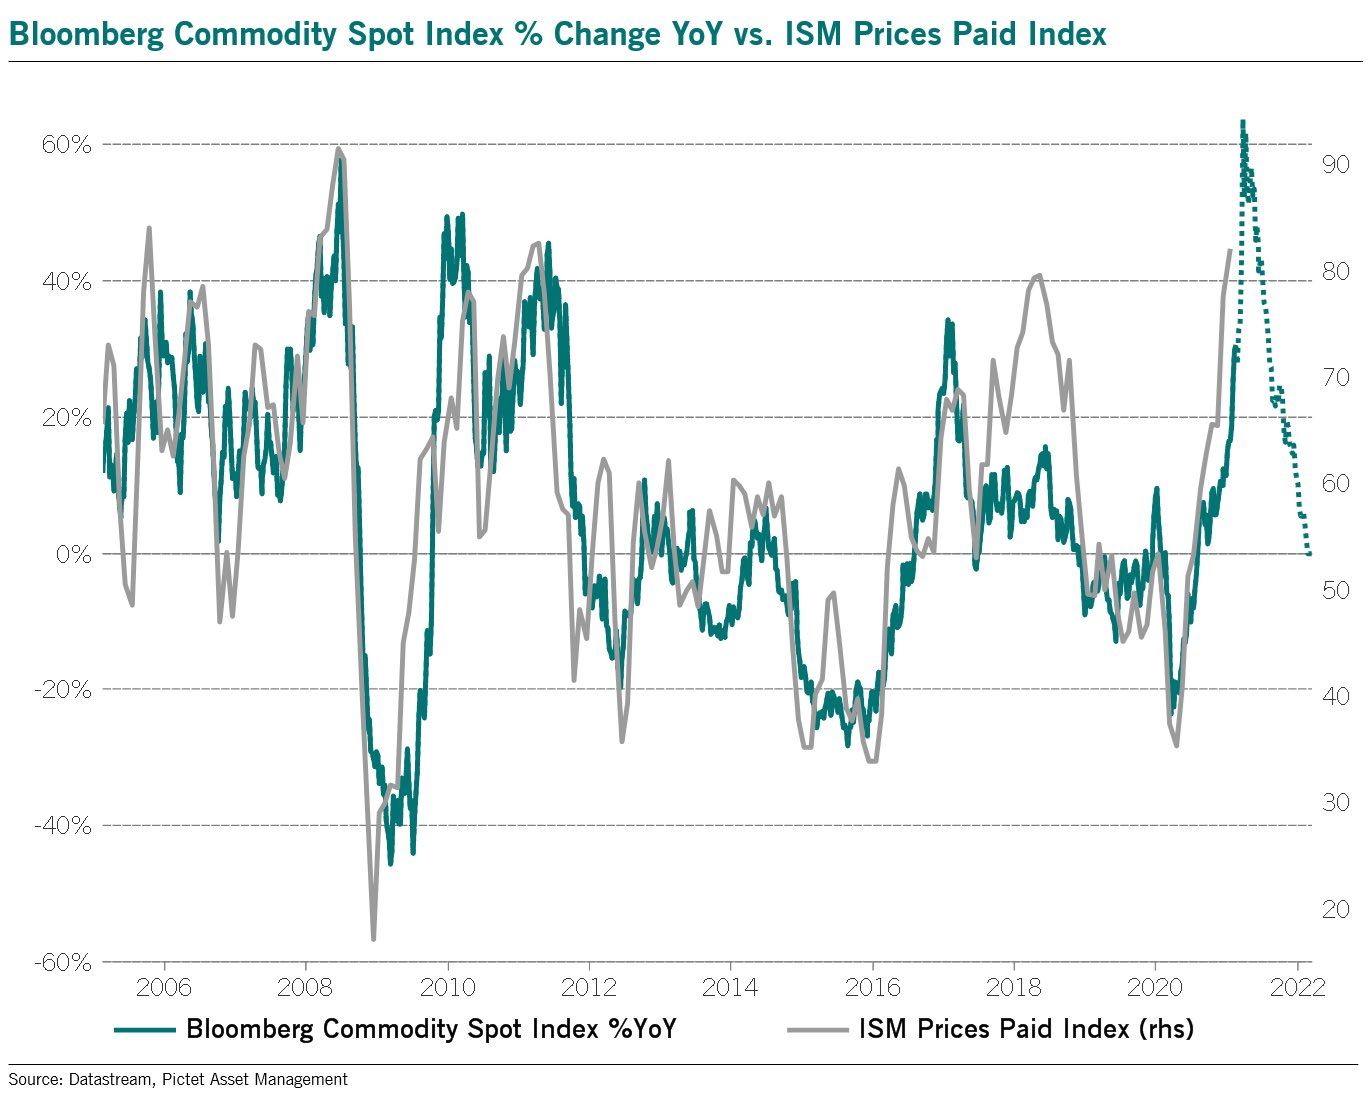 ISM 'prices paid' hints commodities may have run too far